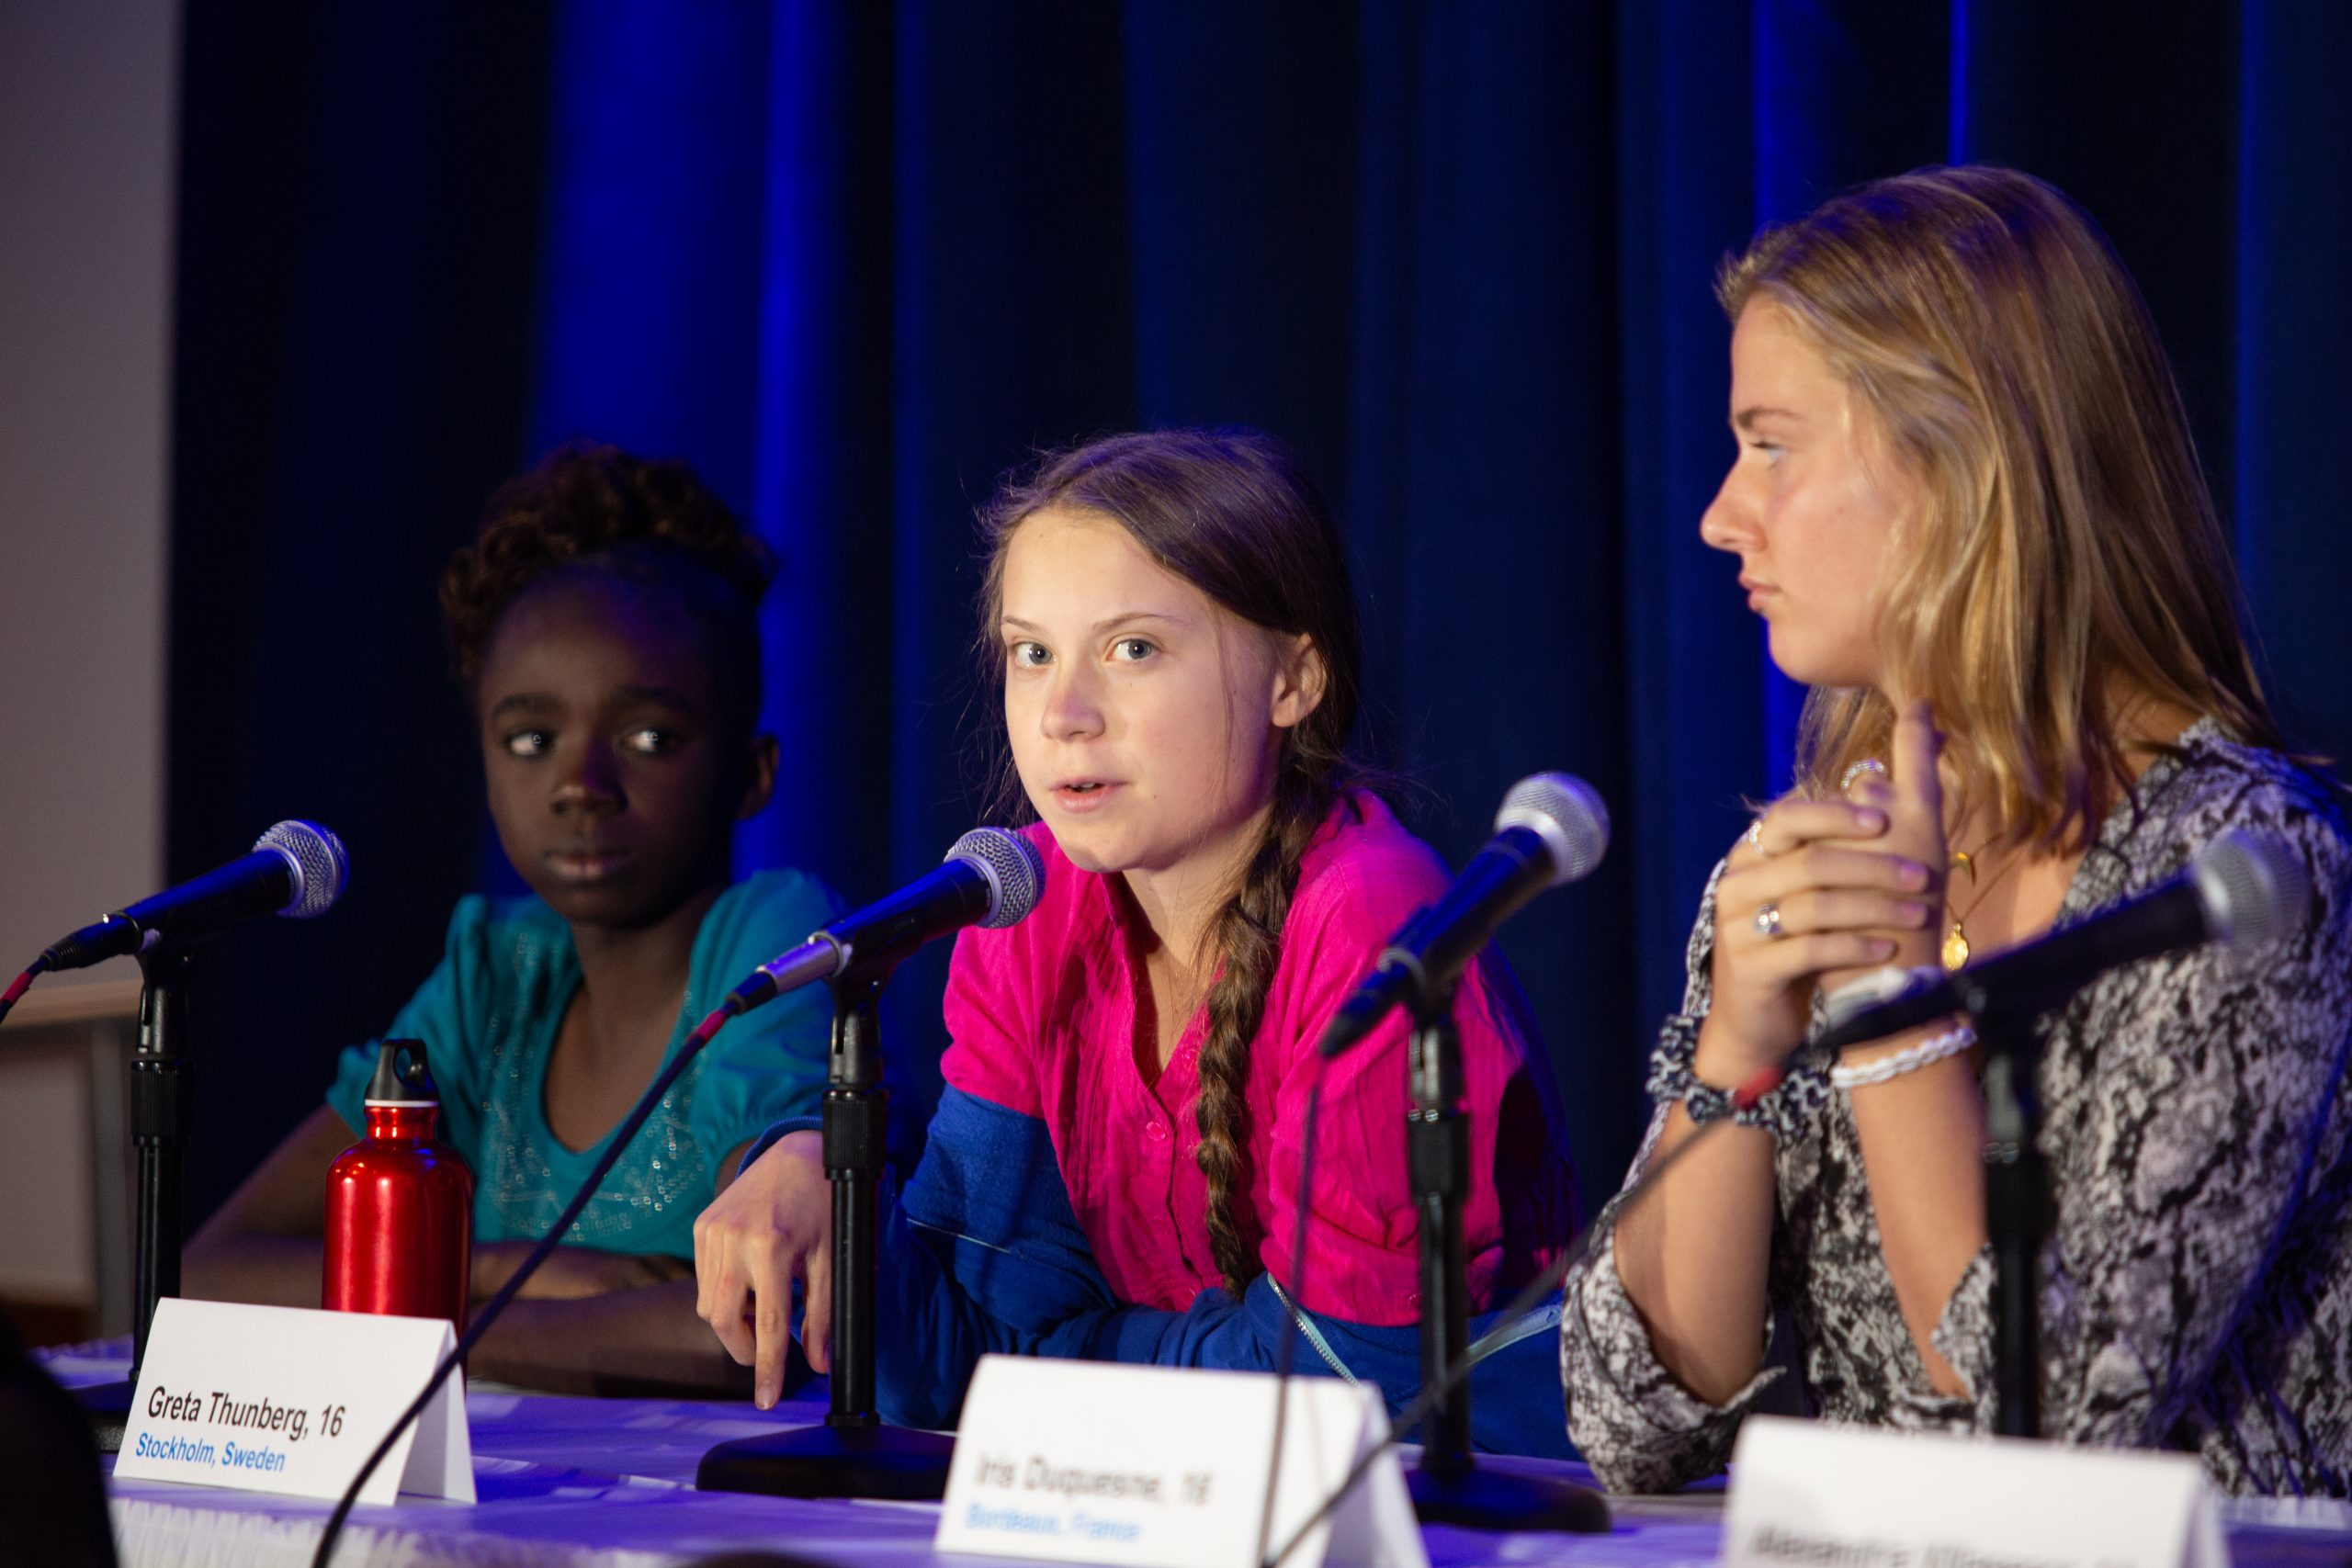 greta thunberg speaks at a conference